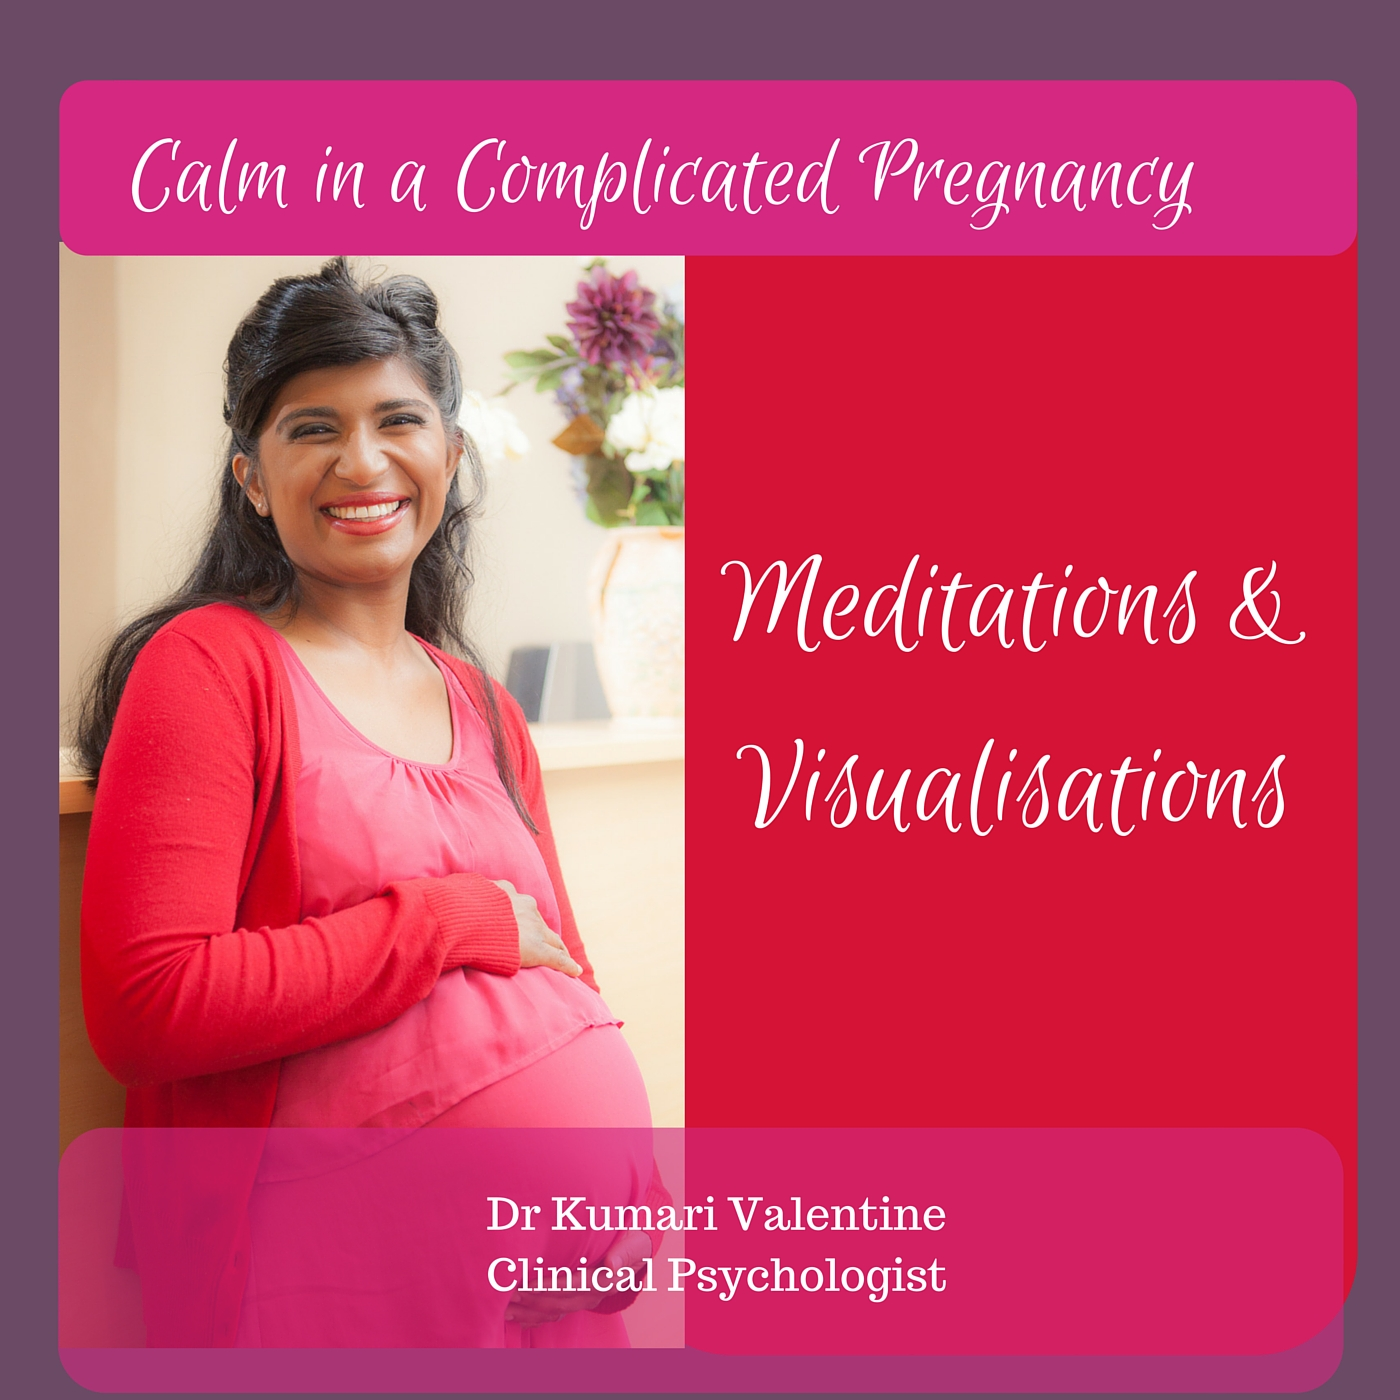 Meditations for a Complicated Pregnancy